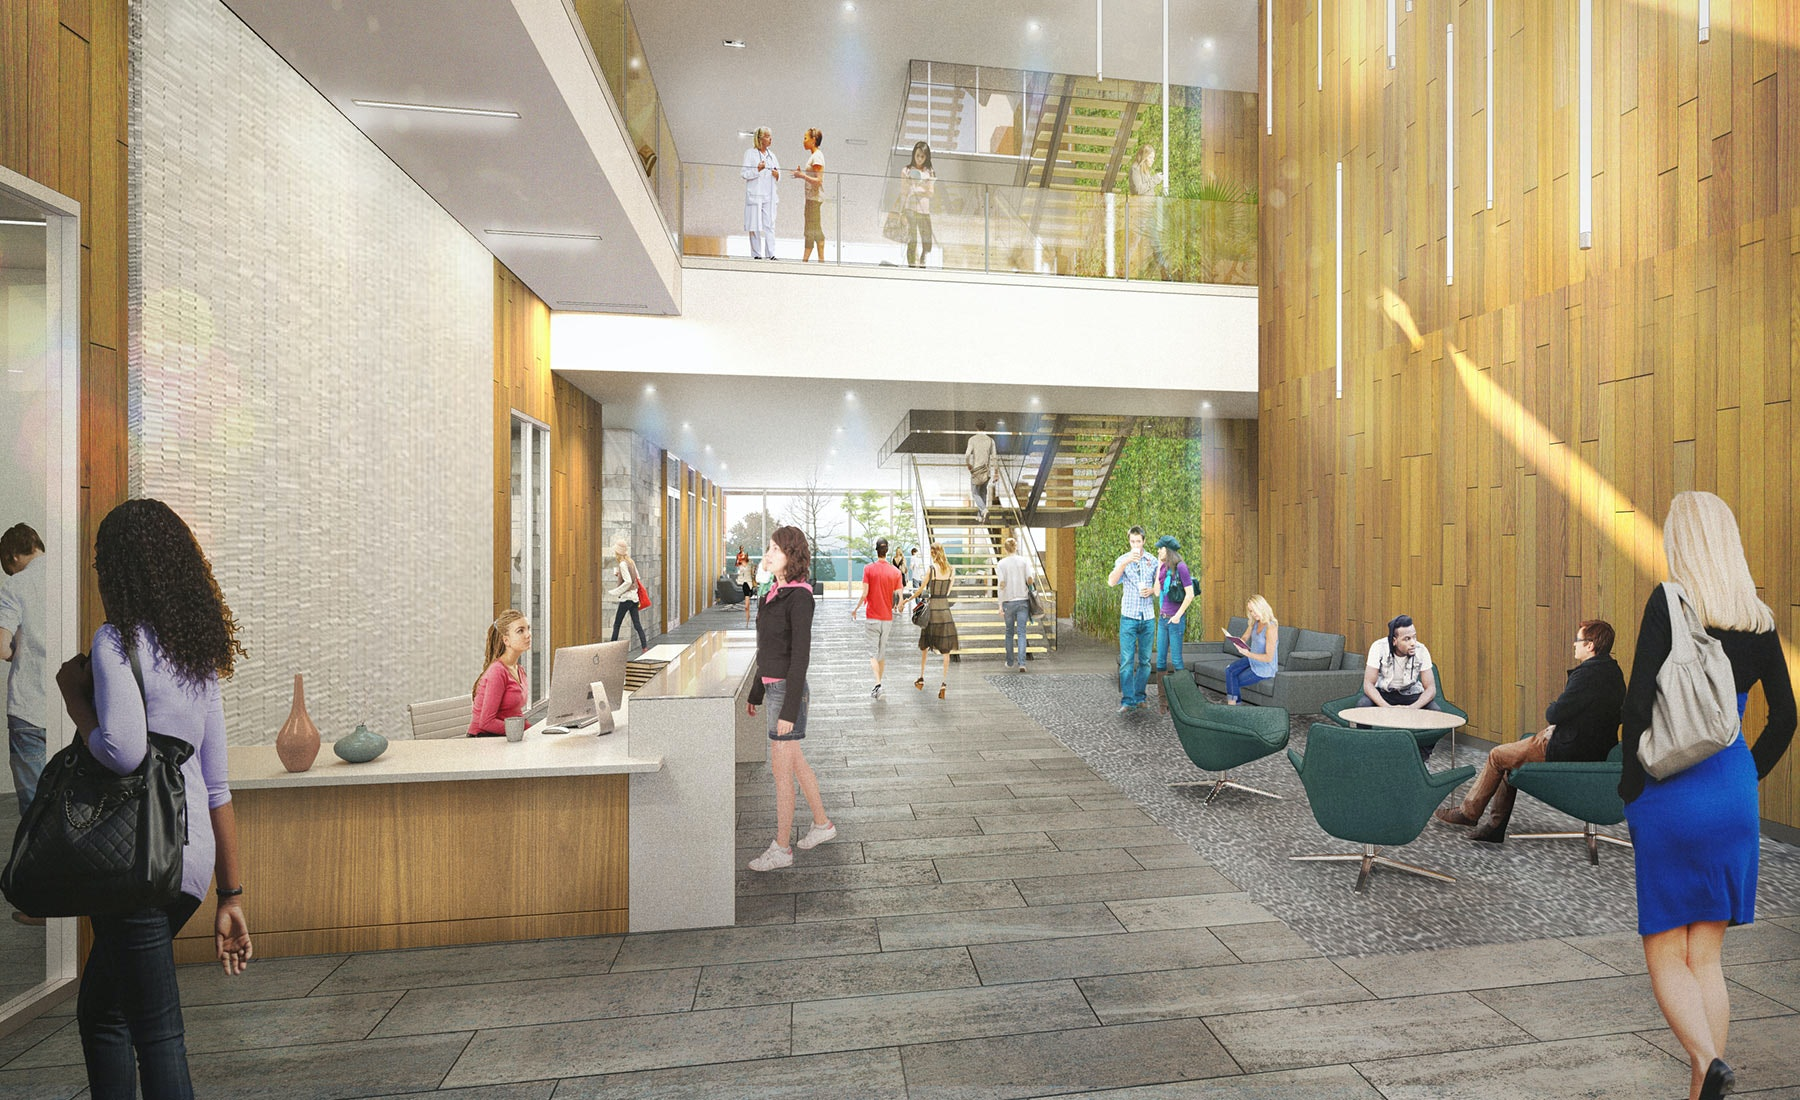 Student Health and Wellness Center, Lobby: The entire building is organized around an open and light-filled entry and multi-story lobby, while generous windows invite daylight into all departments, improving orientation and wayfinding.